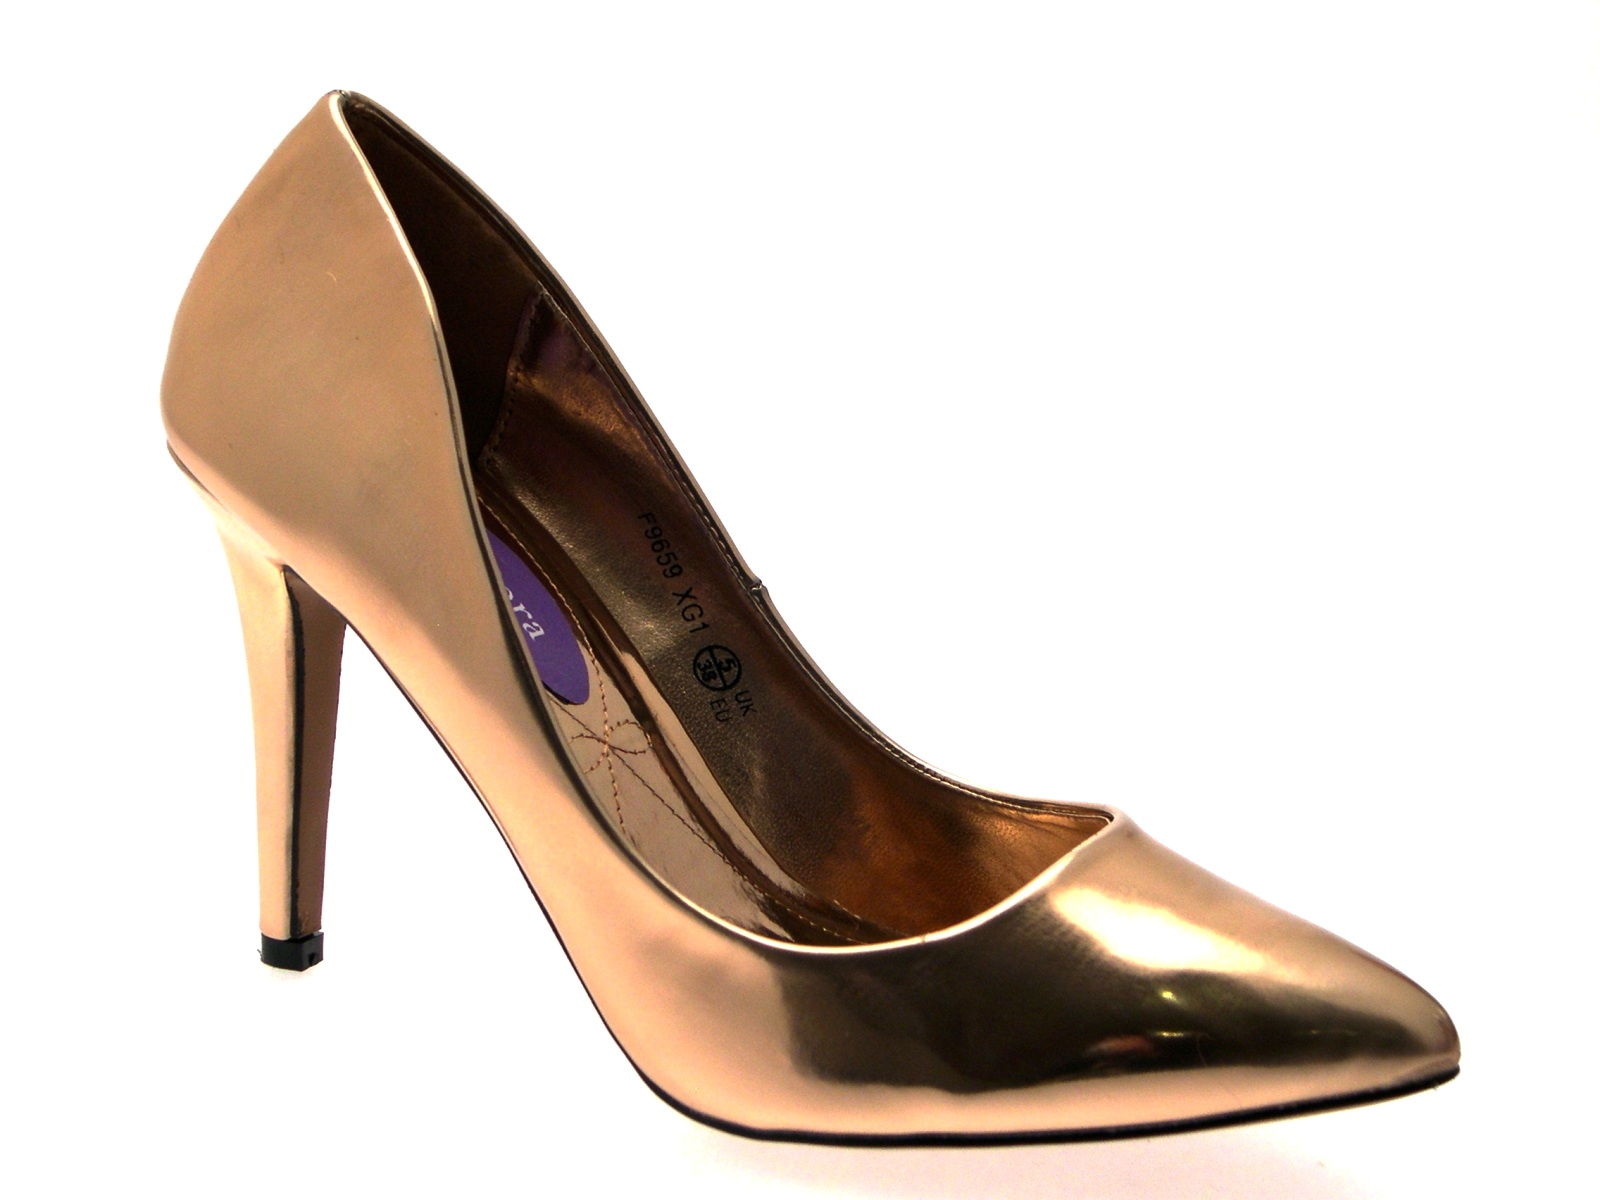 Womens-Metallic-Pointed-Toe-Court-Stiletto-High-Heels-Ladies-Work-Office-Shoes thumbnail 24